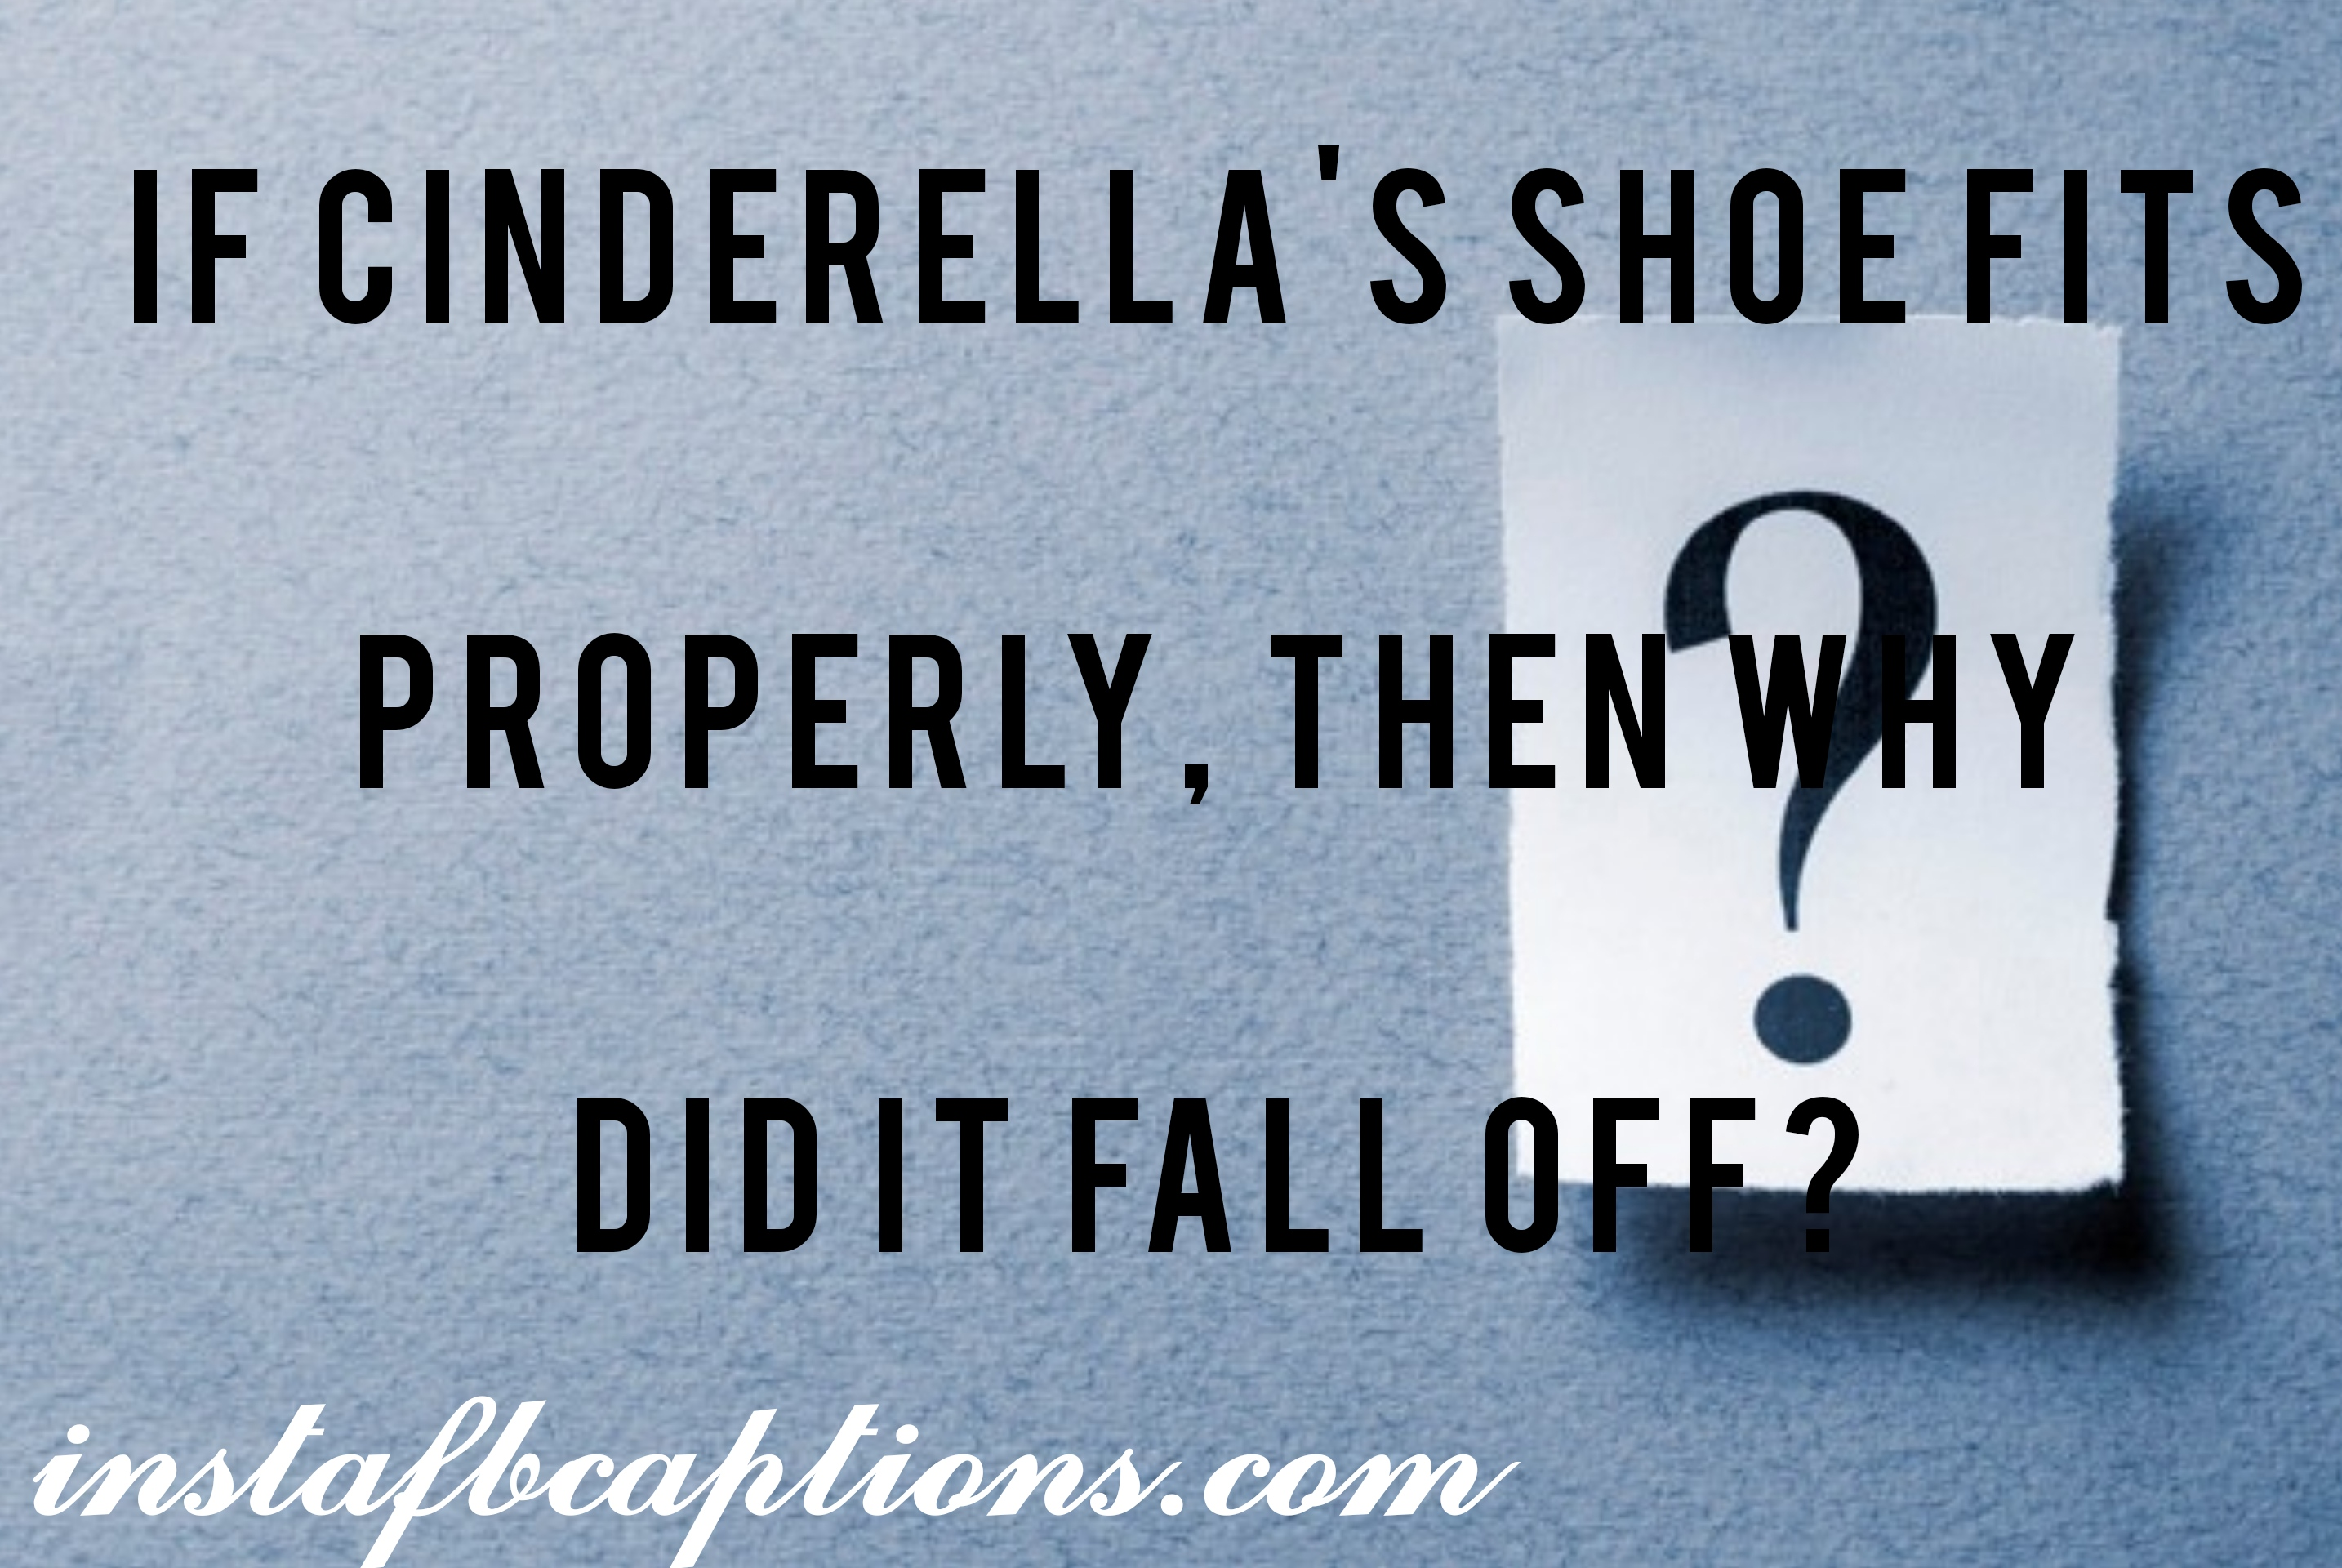 If Cinderella's Shoe Fits Properly, Then Why Did It Fall Off  - if cinderellas shoe fits properly then why did it fall off - Question Instagram captions || (selfies funny Best)